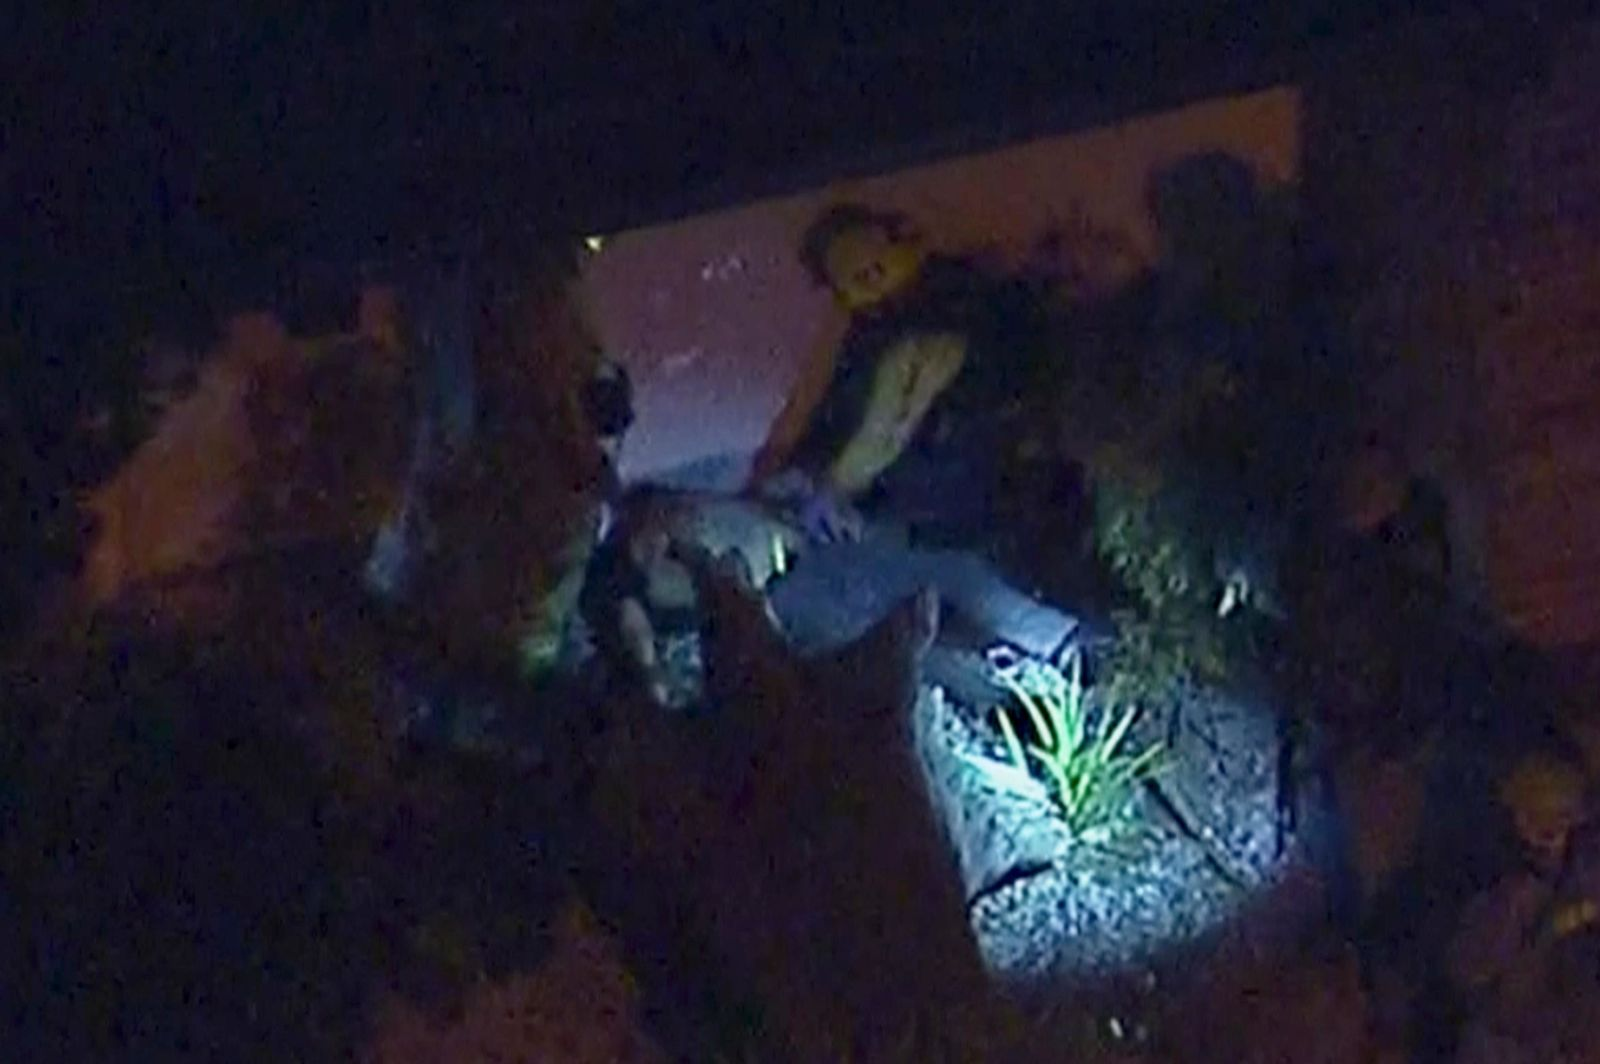 In this image made from aerial video, officials tend to a person on the ground in the vicinity of a shooting in Thousand Oaks, California, early Thursday, Nov. 8, 2018. (KABC via AP)